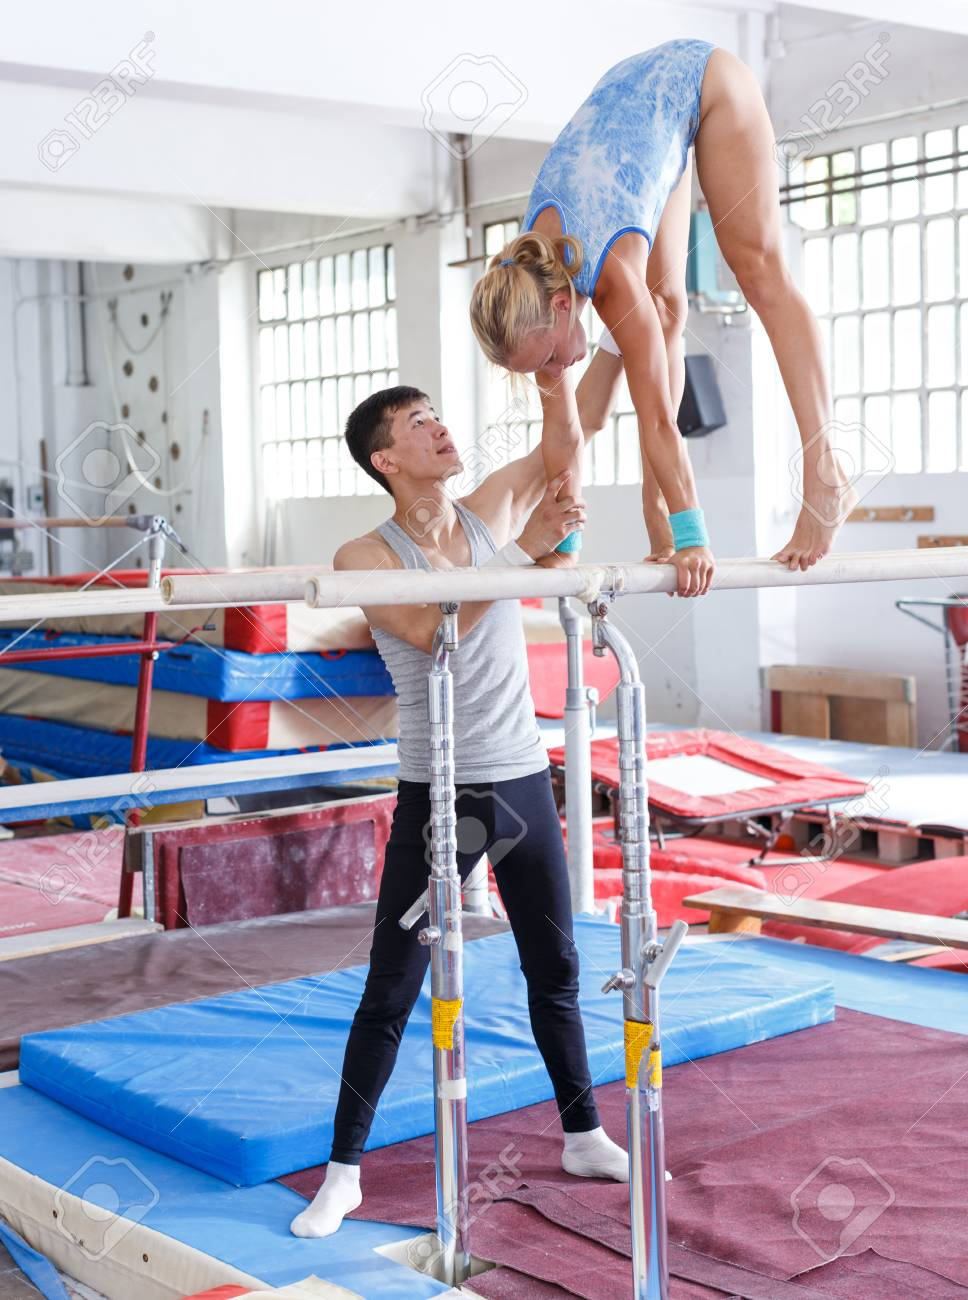 e59ececd61fc Athletic woman doing gymnastic exercises on parallel bars, man near  securing her Stock Photo -